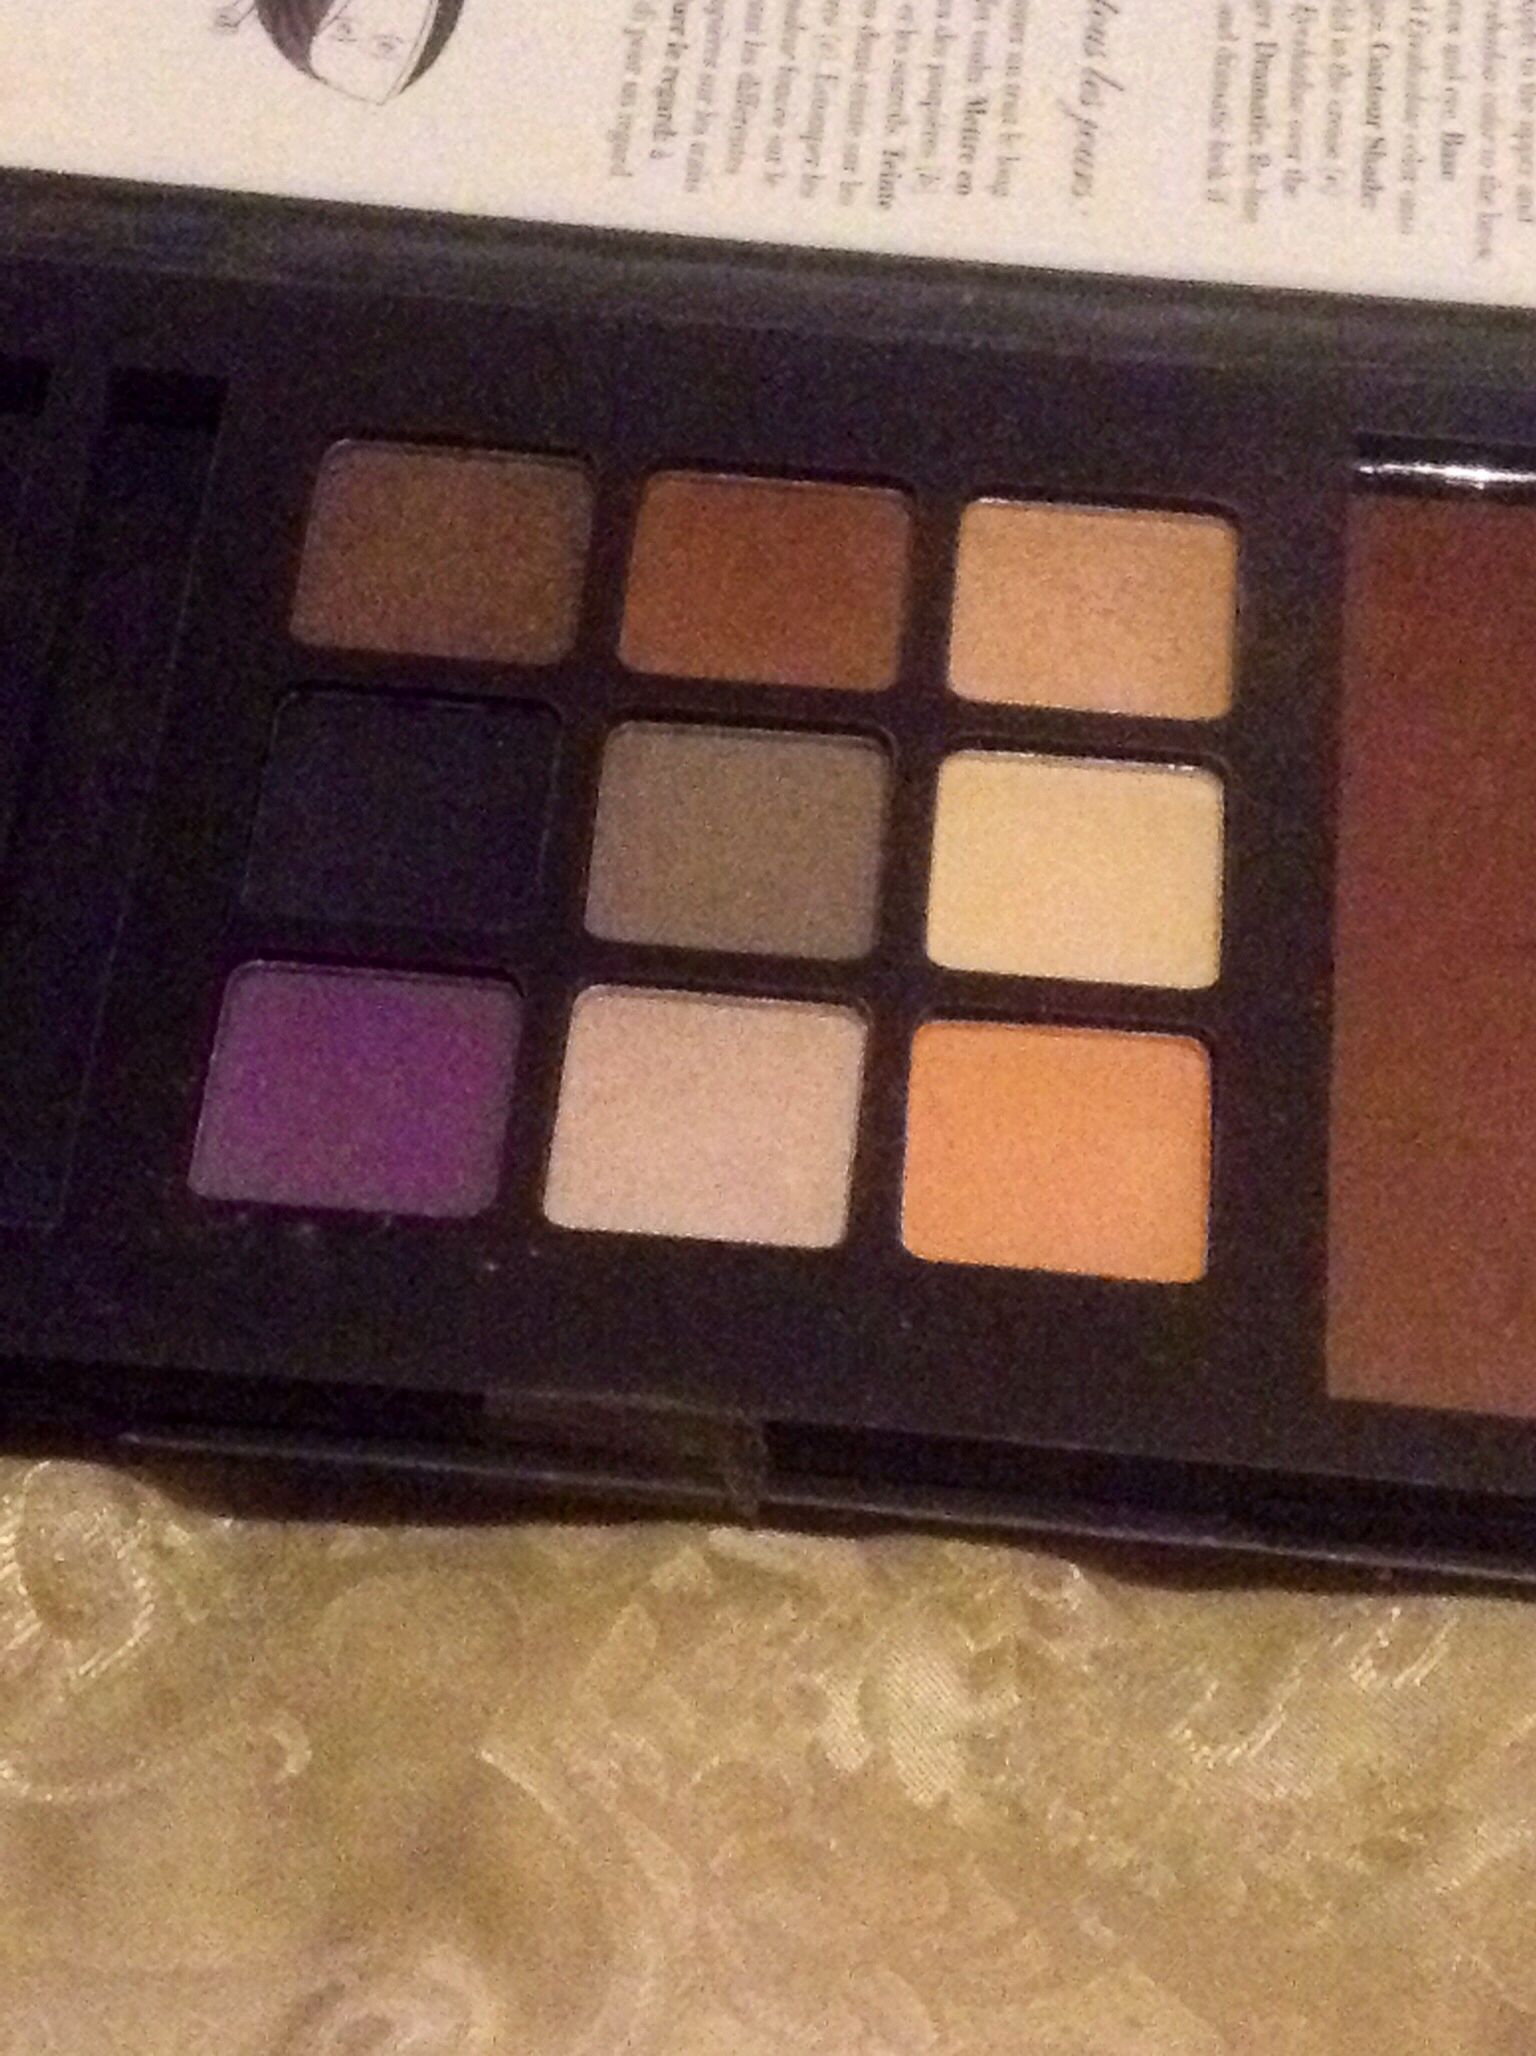 E.L.F Beauty Book. Purchased from Big Lots, clearance $3.00.